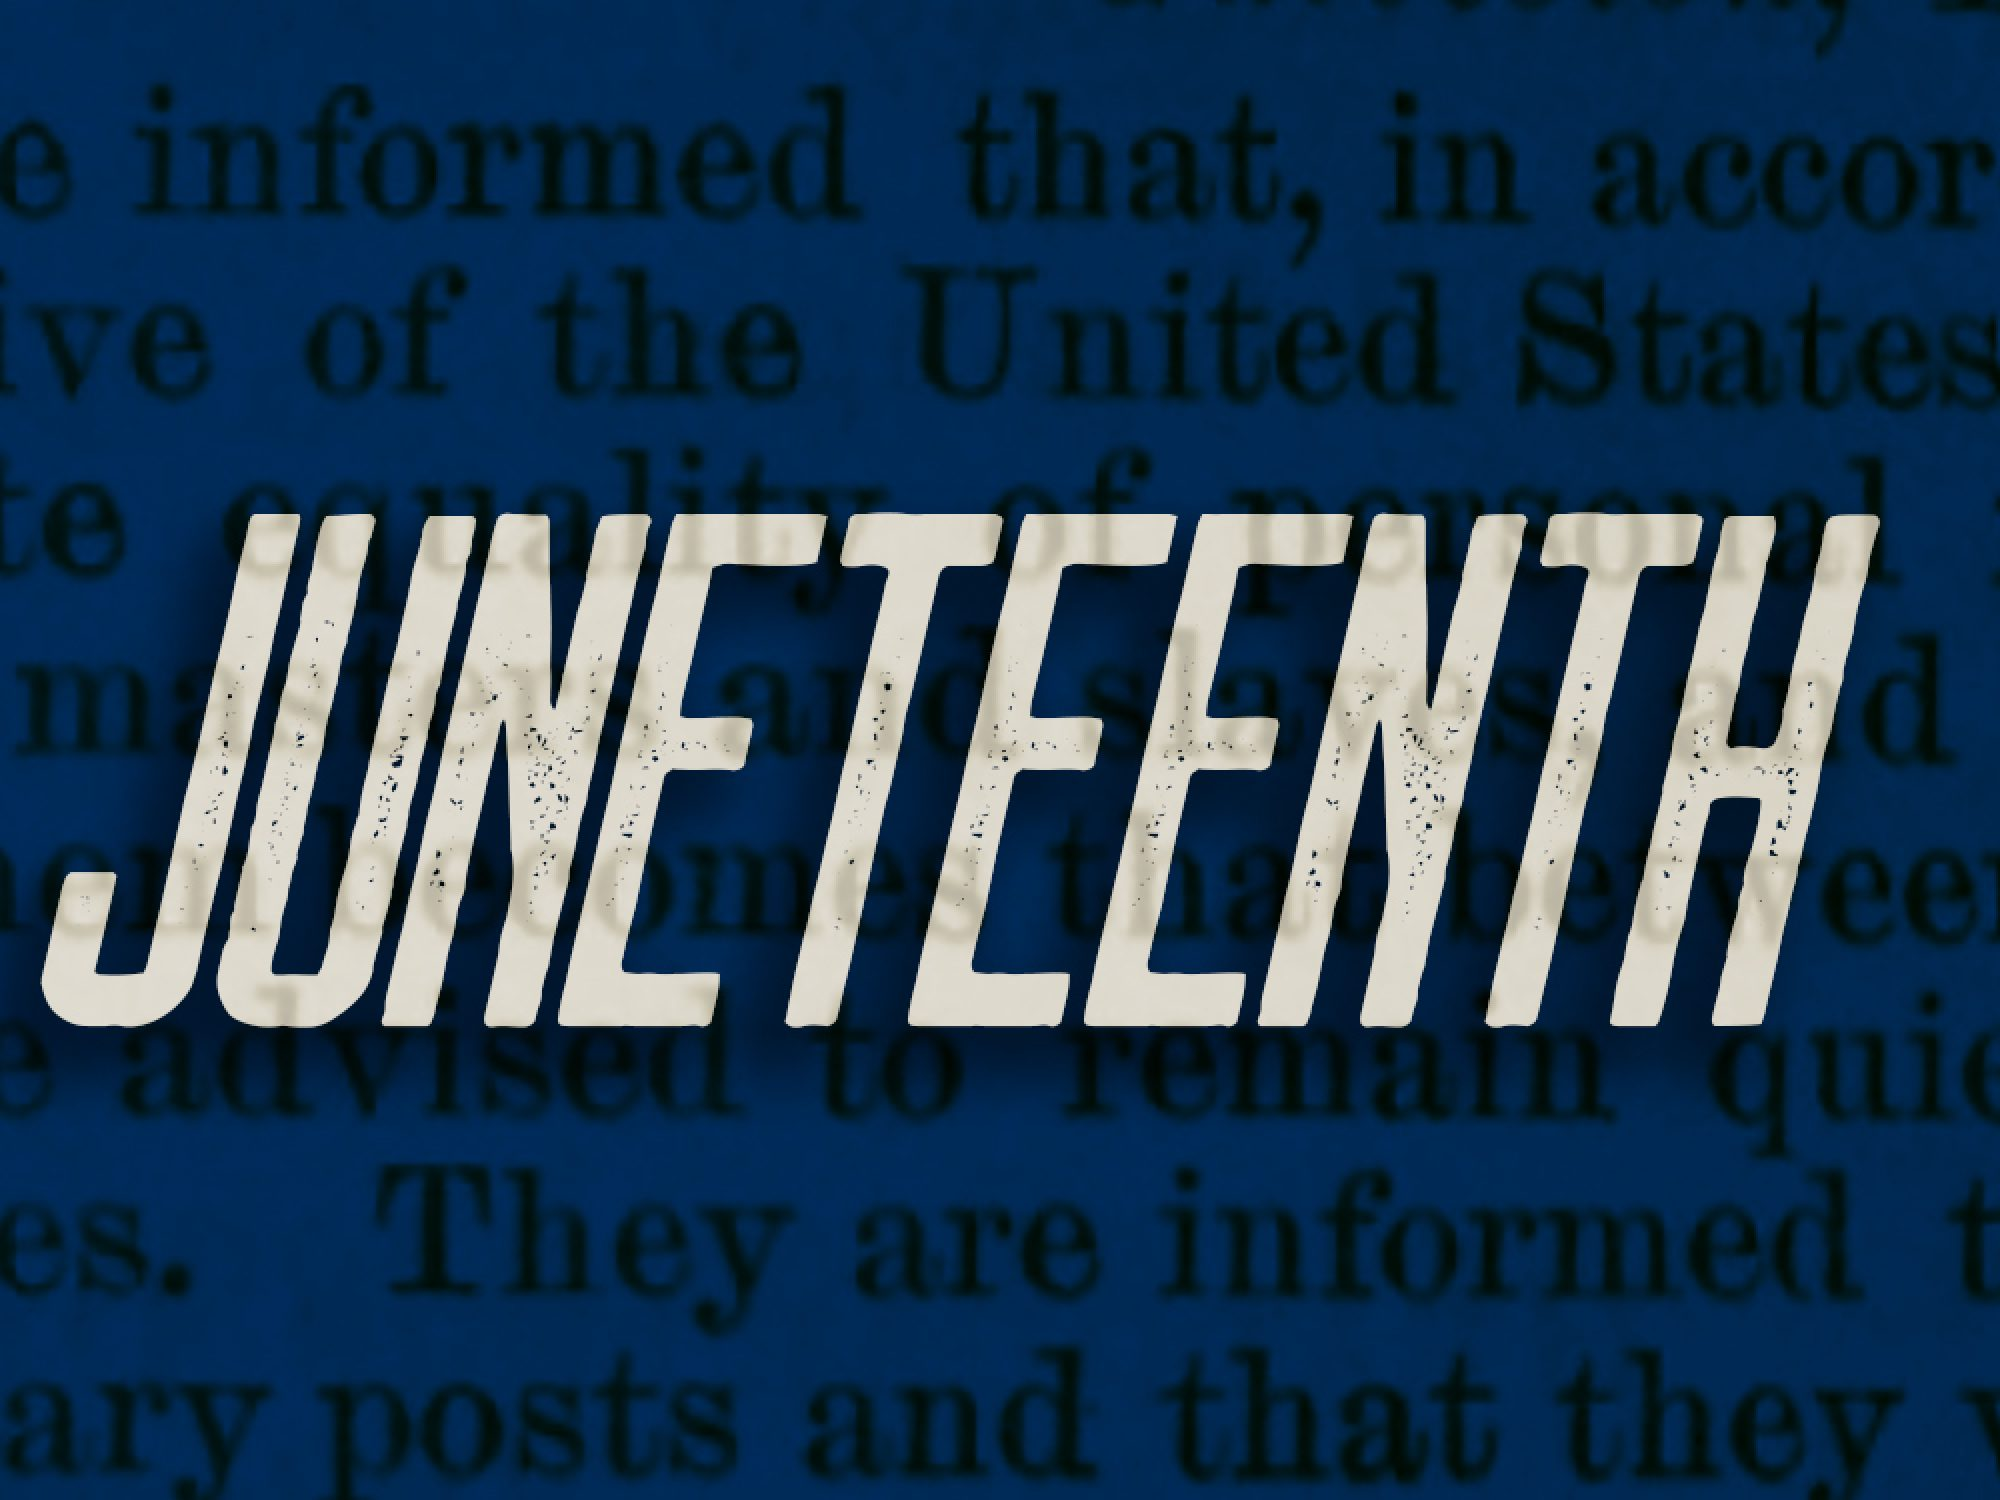 Juneteenth Graphic with a blue background.